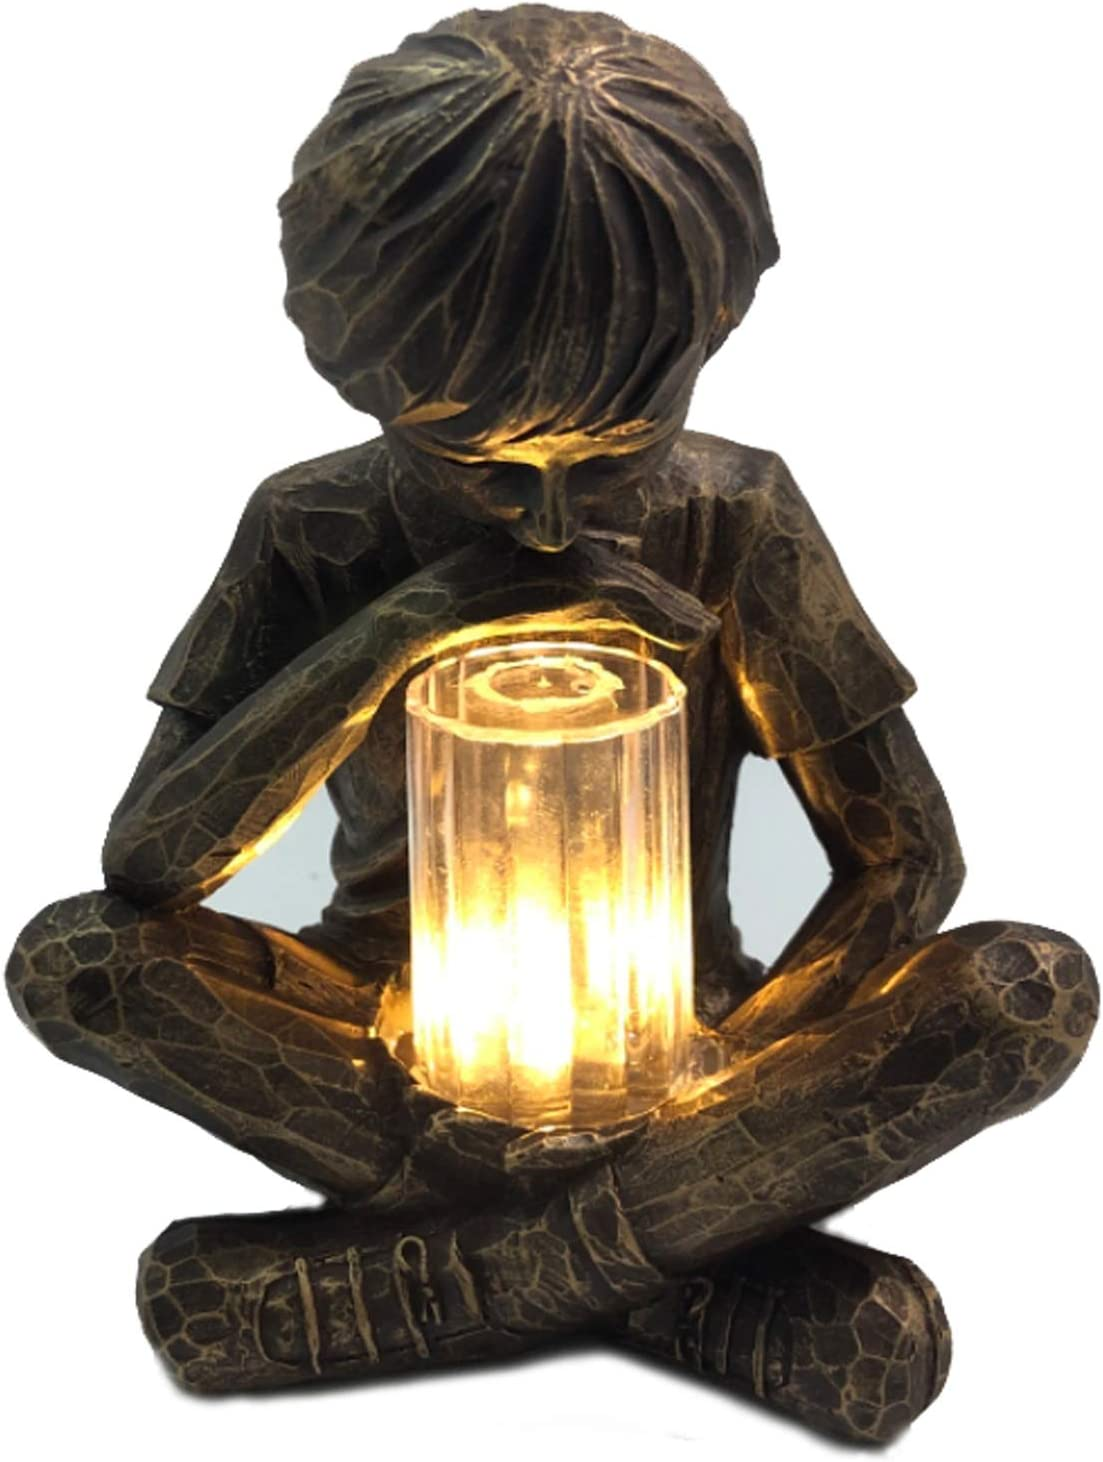 Famiwarm Glimpses of God Boy Statue Easter Garden Decoration Statue Resin Ornament for Patio Lawn Yard Art Home Decoration